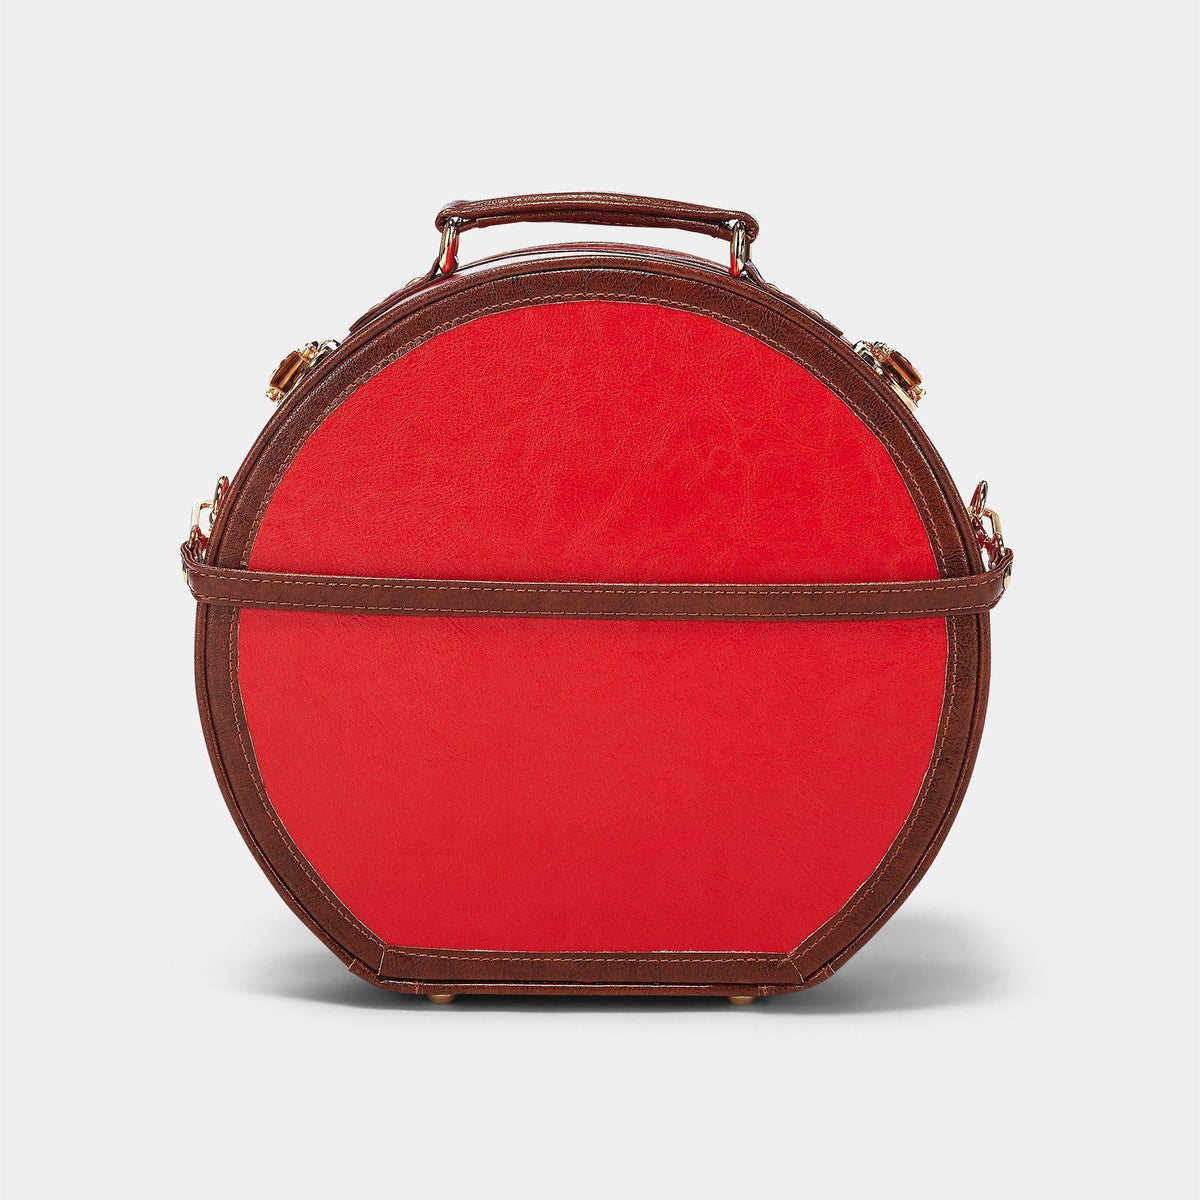 The Entrepreneur Hatbox Small in Red - Hat Box Luggage - Exterior Back with Shoulder Strap